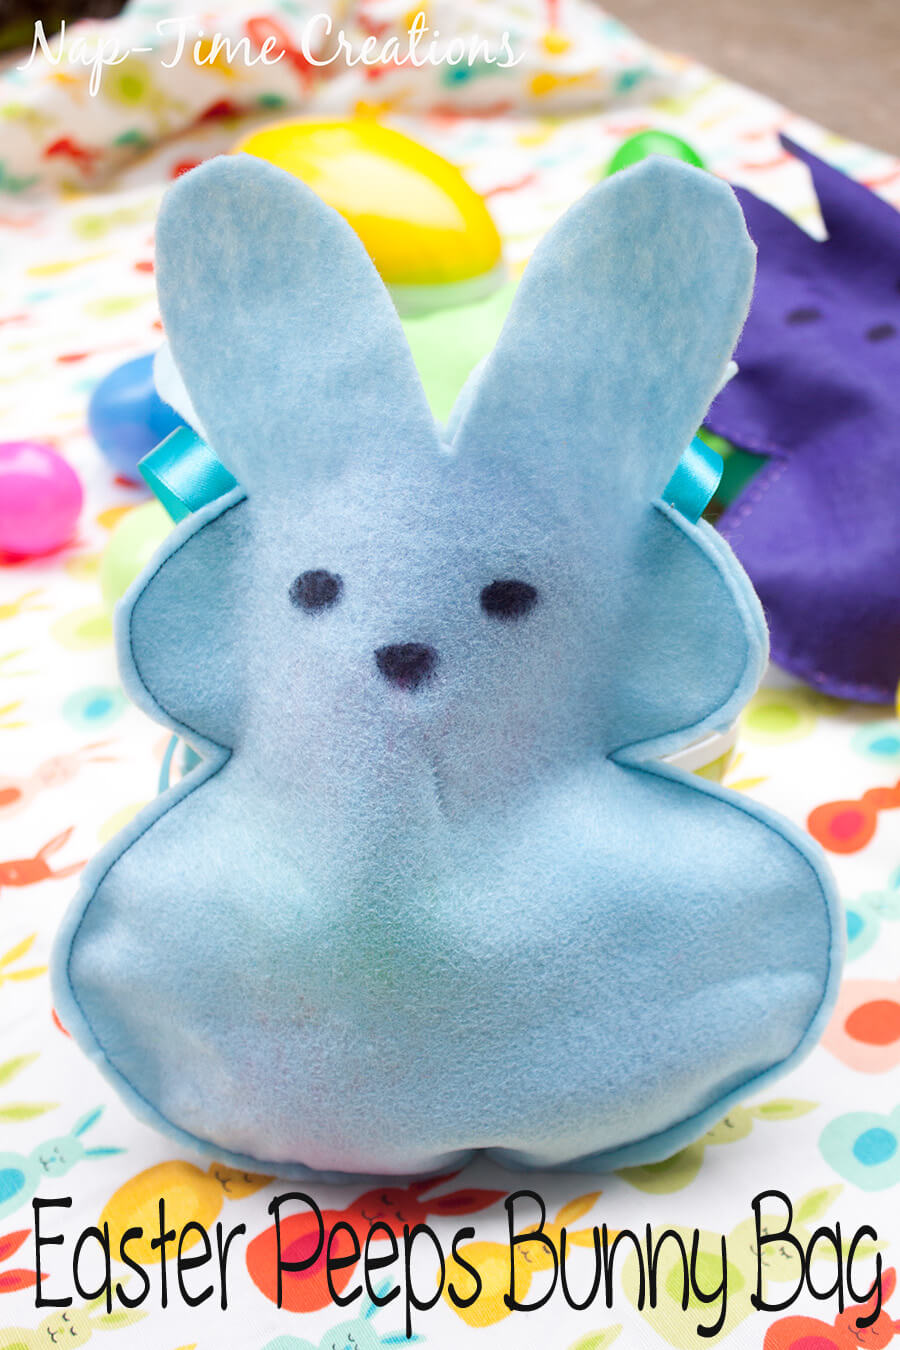 Easter Peeps Bunny Bags from Nap-Time Creations